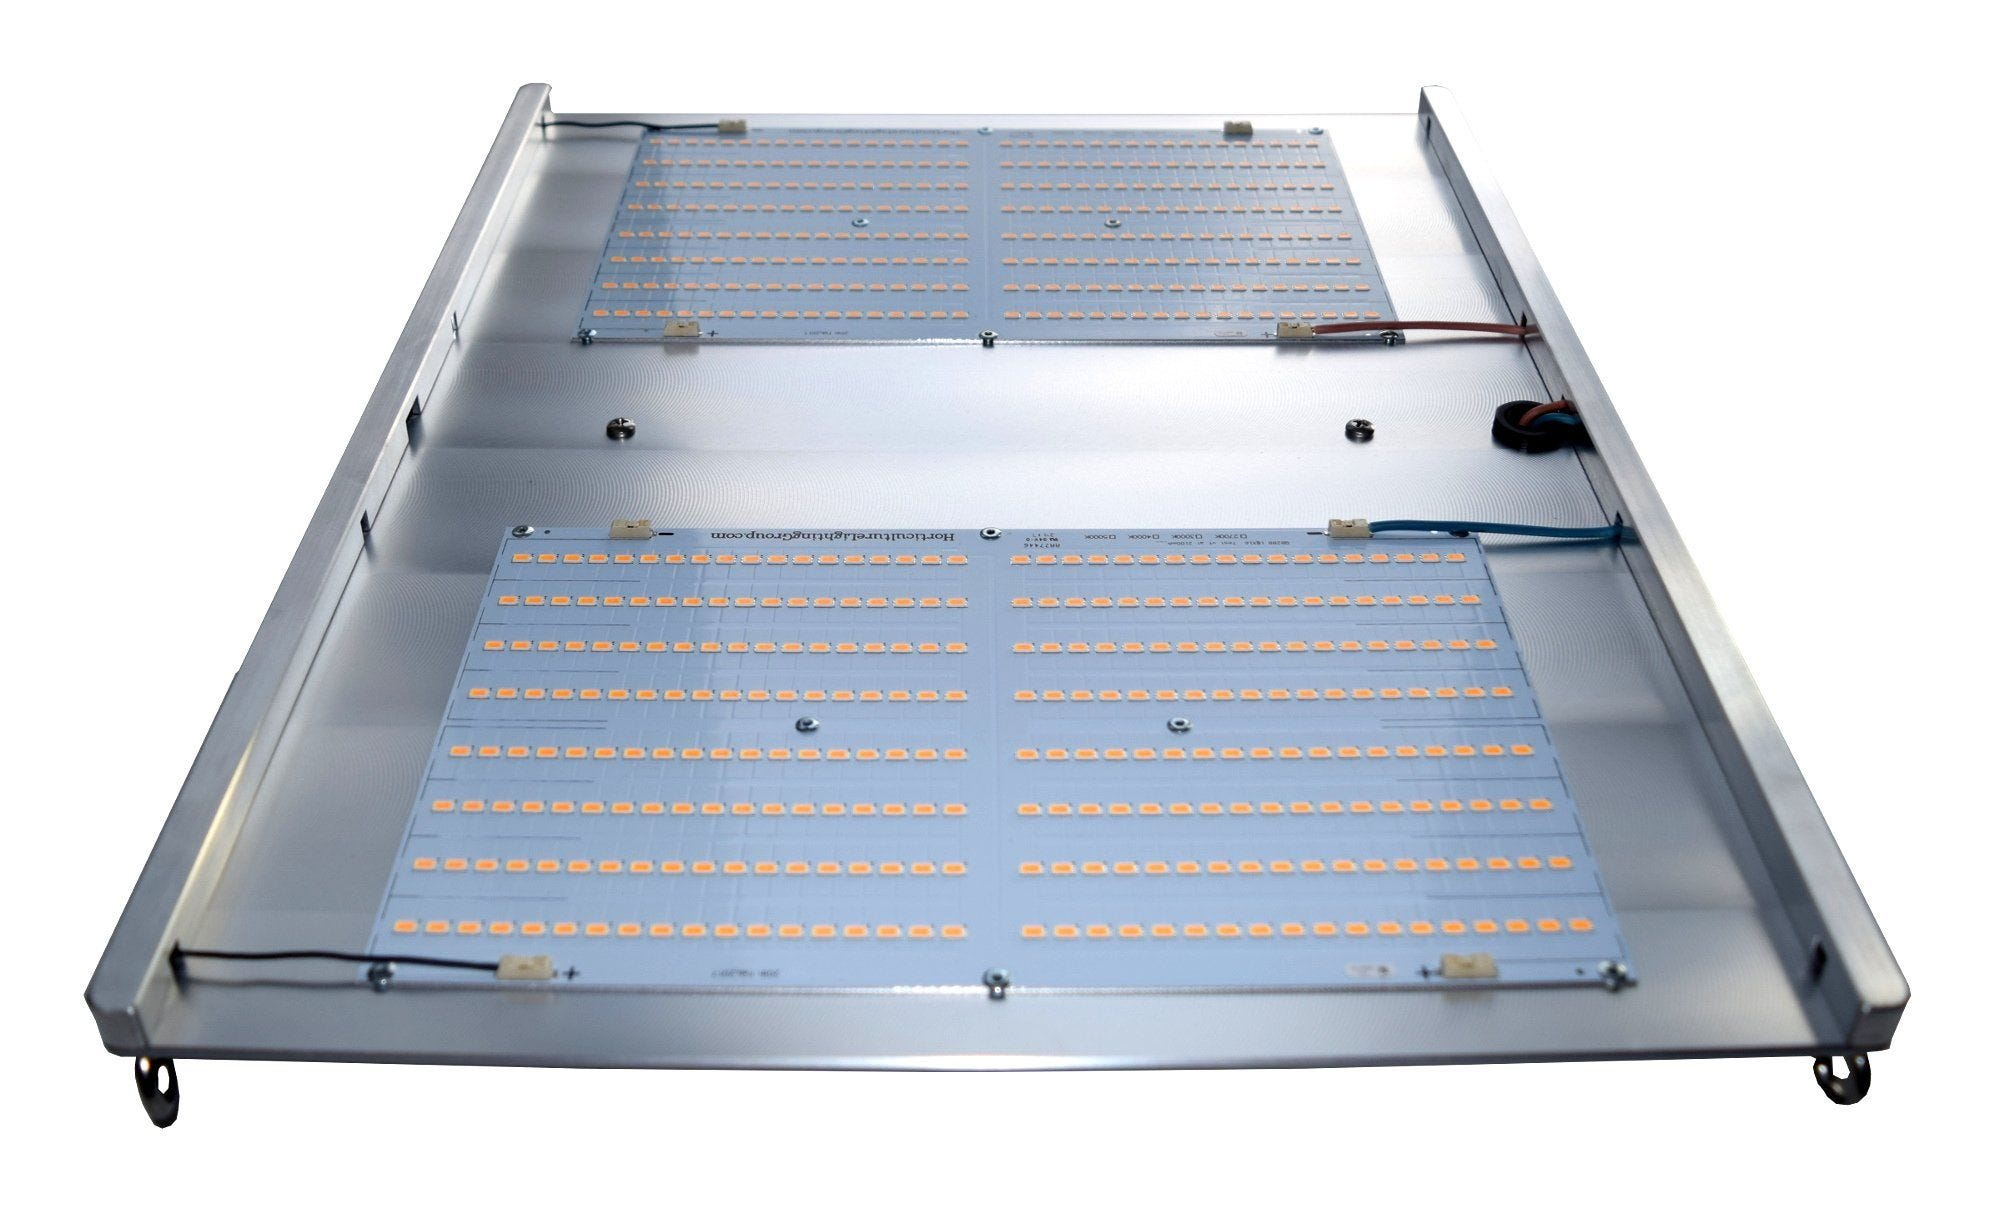 Horticulture Lighting Group HLG 300 LED - 300W 2 Quantum Boards Horticulture Lighting Group's HLG 300 indoor horticulture LED Lamp is designed to power a 3'x3' space . Each lamp uses 2 of our custom designed High-efficiency white light Quantum Boards. With a total of 576 Top Bin Samsung LM561C S6 LED's. Clear Anodized Aluminum.Comes in either 3000K or 4000K spectrums. TOP FEATURES High efficiency white light Quantum Boards White Light Full Spectrum for better results Reliable passive cooled design Better canopy light penetration with diffused light Ideal for veg and bloom Dimmable Power Supply included Comes with 120V plug SPECIFICATIONS Power 120-285 Watts Voltage Range 90-277 VAC LED 576 pcs Samsung 561C Flowering Footprint 2.5'x2.5' or 3'x3' Veg Footprint 4'X4' System Efficiency 147 Lm/W System PPF Efficacy 2.2 μmol/joule Total output 627 PPF Dimensions 18  x 20  x 3  Recommended Mounting Height 15-24 inches